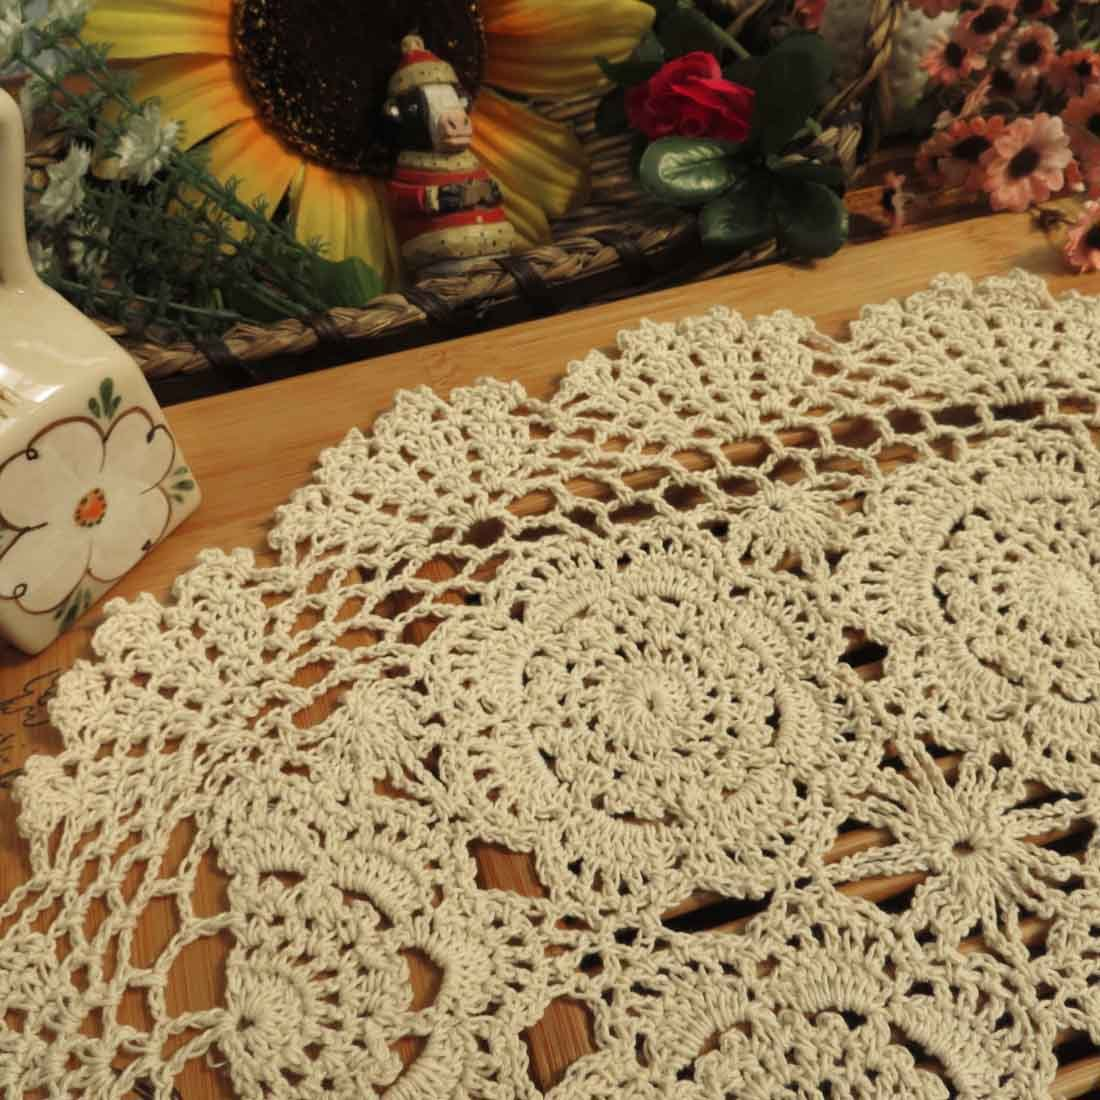 Amazon kilofly crochet cotton lace placemats doilies 4pc amazon kilofly crochet cotton lace placemats doilies 4pc oval beige 12 x 17 inch home kitchen bankloansurffo Image collections